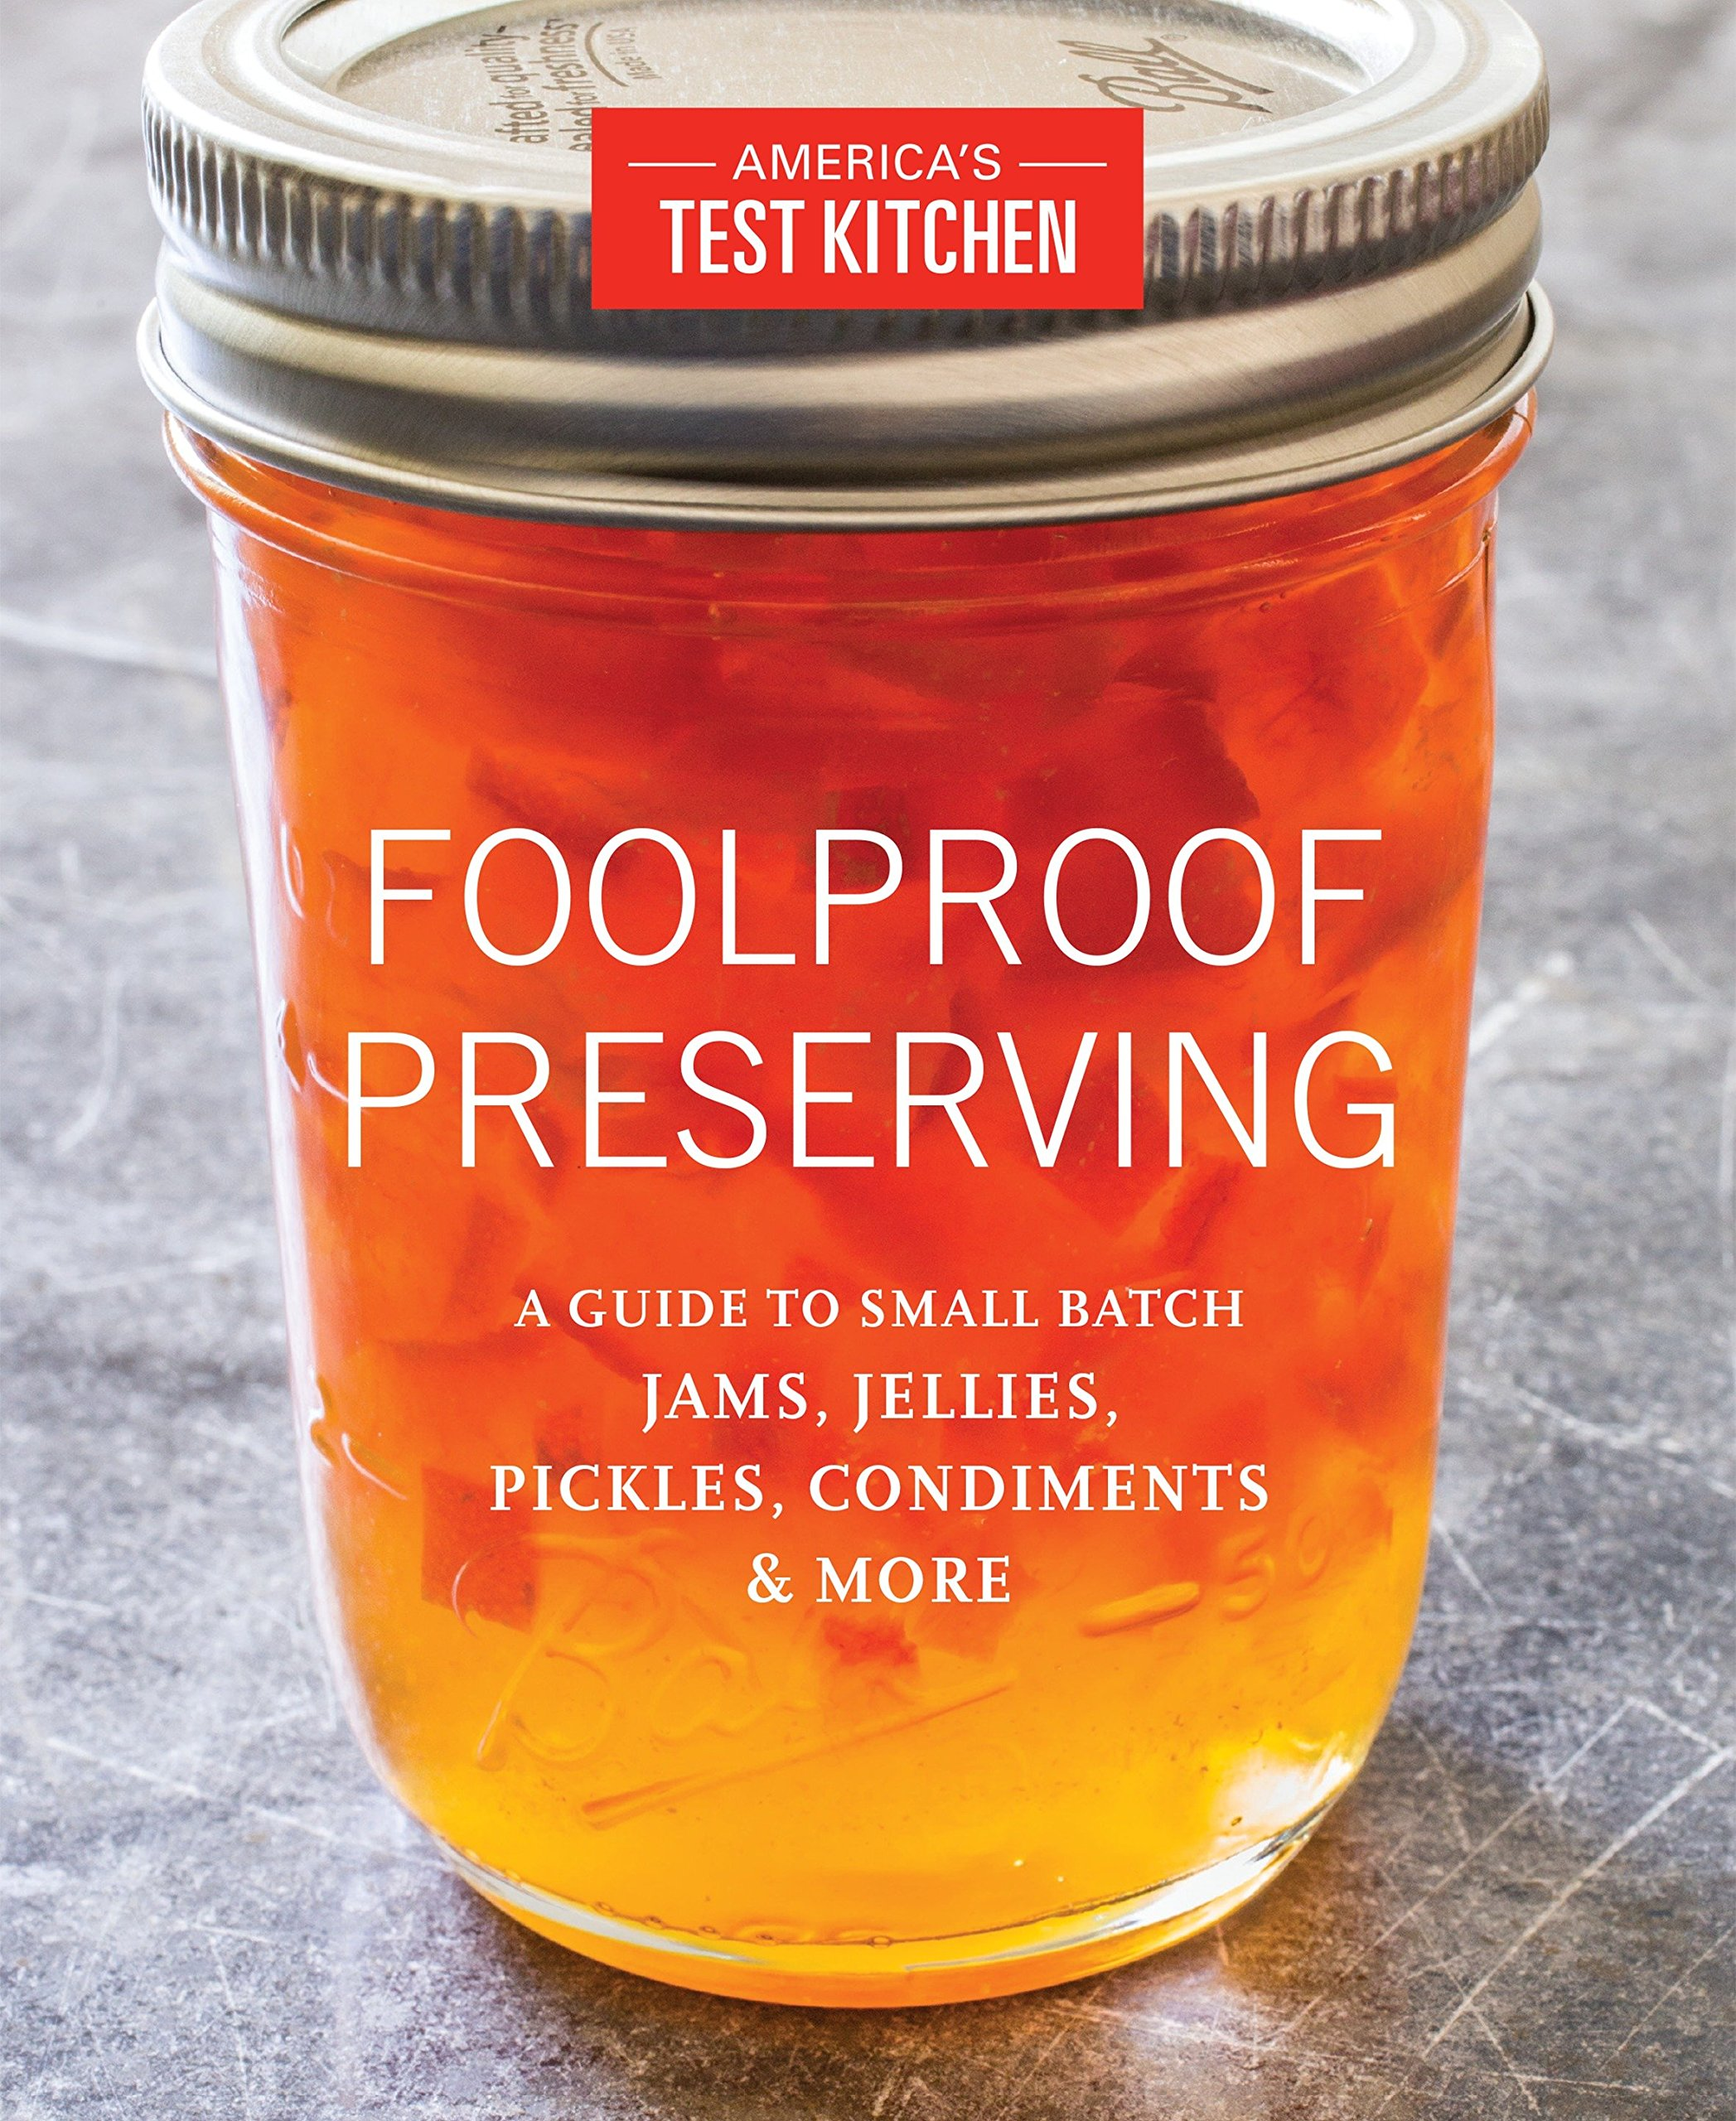 Foolproof Preserving: A Guide to Small Batch Jams, Jellies, Pickles, Condiments & More by Americas Test Kitchen